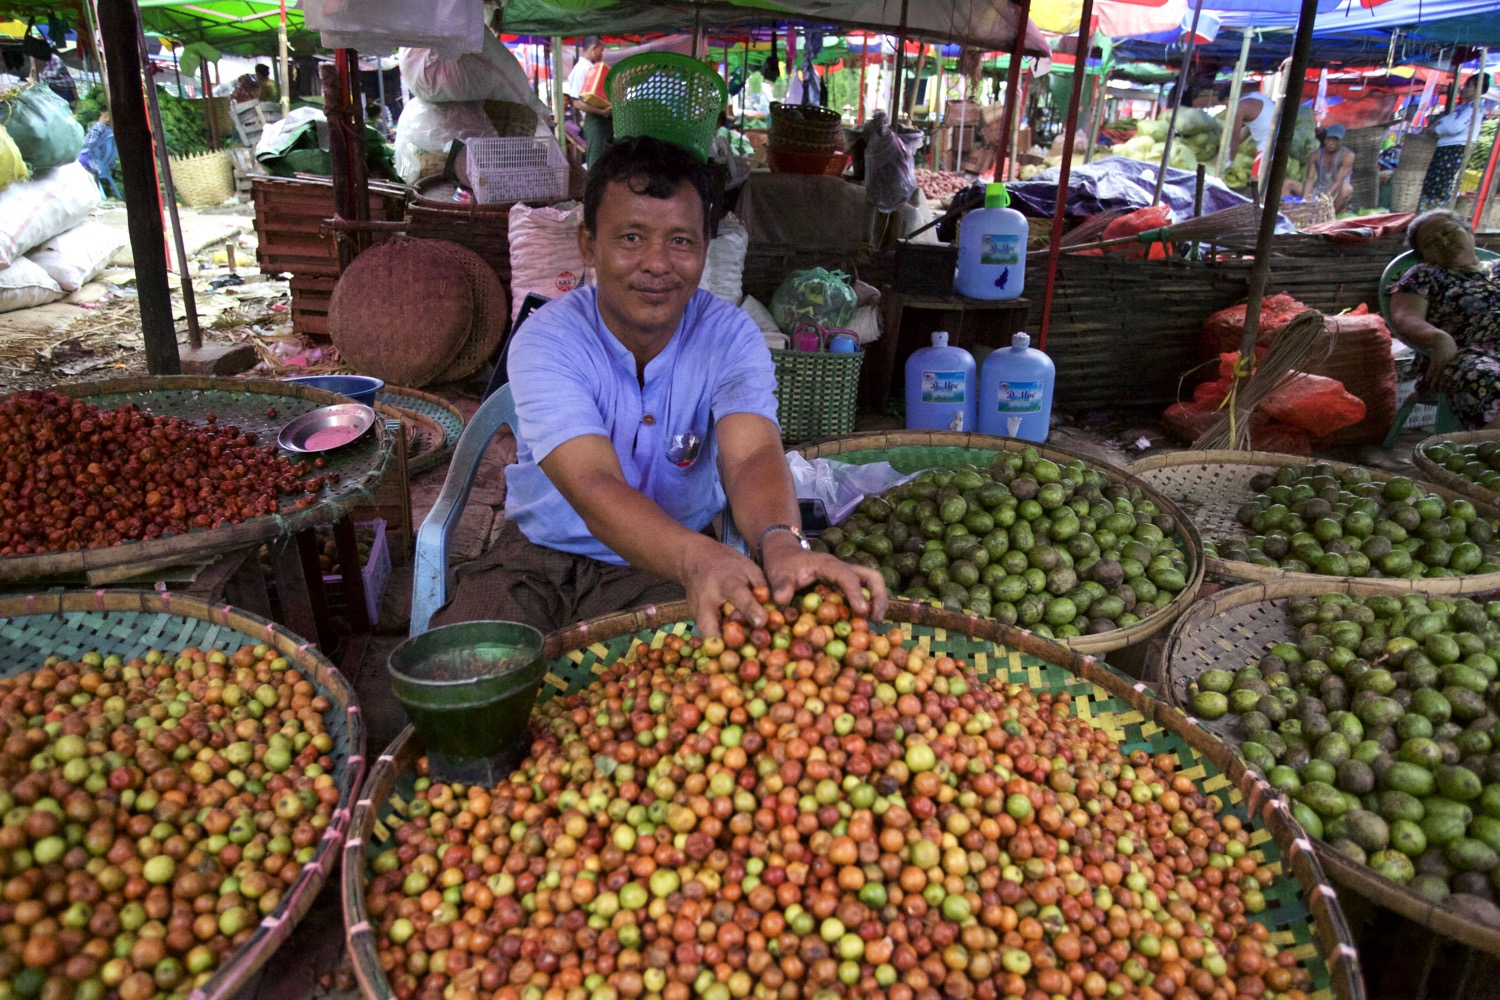 Five Essential Shots You Need to Get for Street Market Photography - vendor selling fruit in large baskets